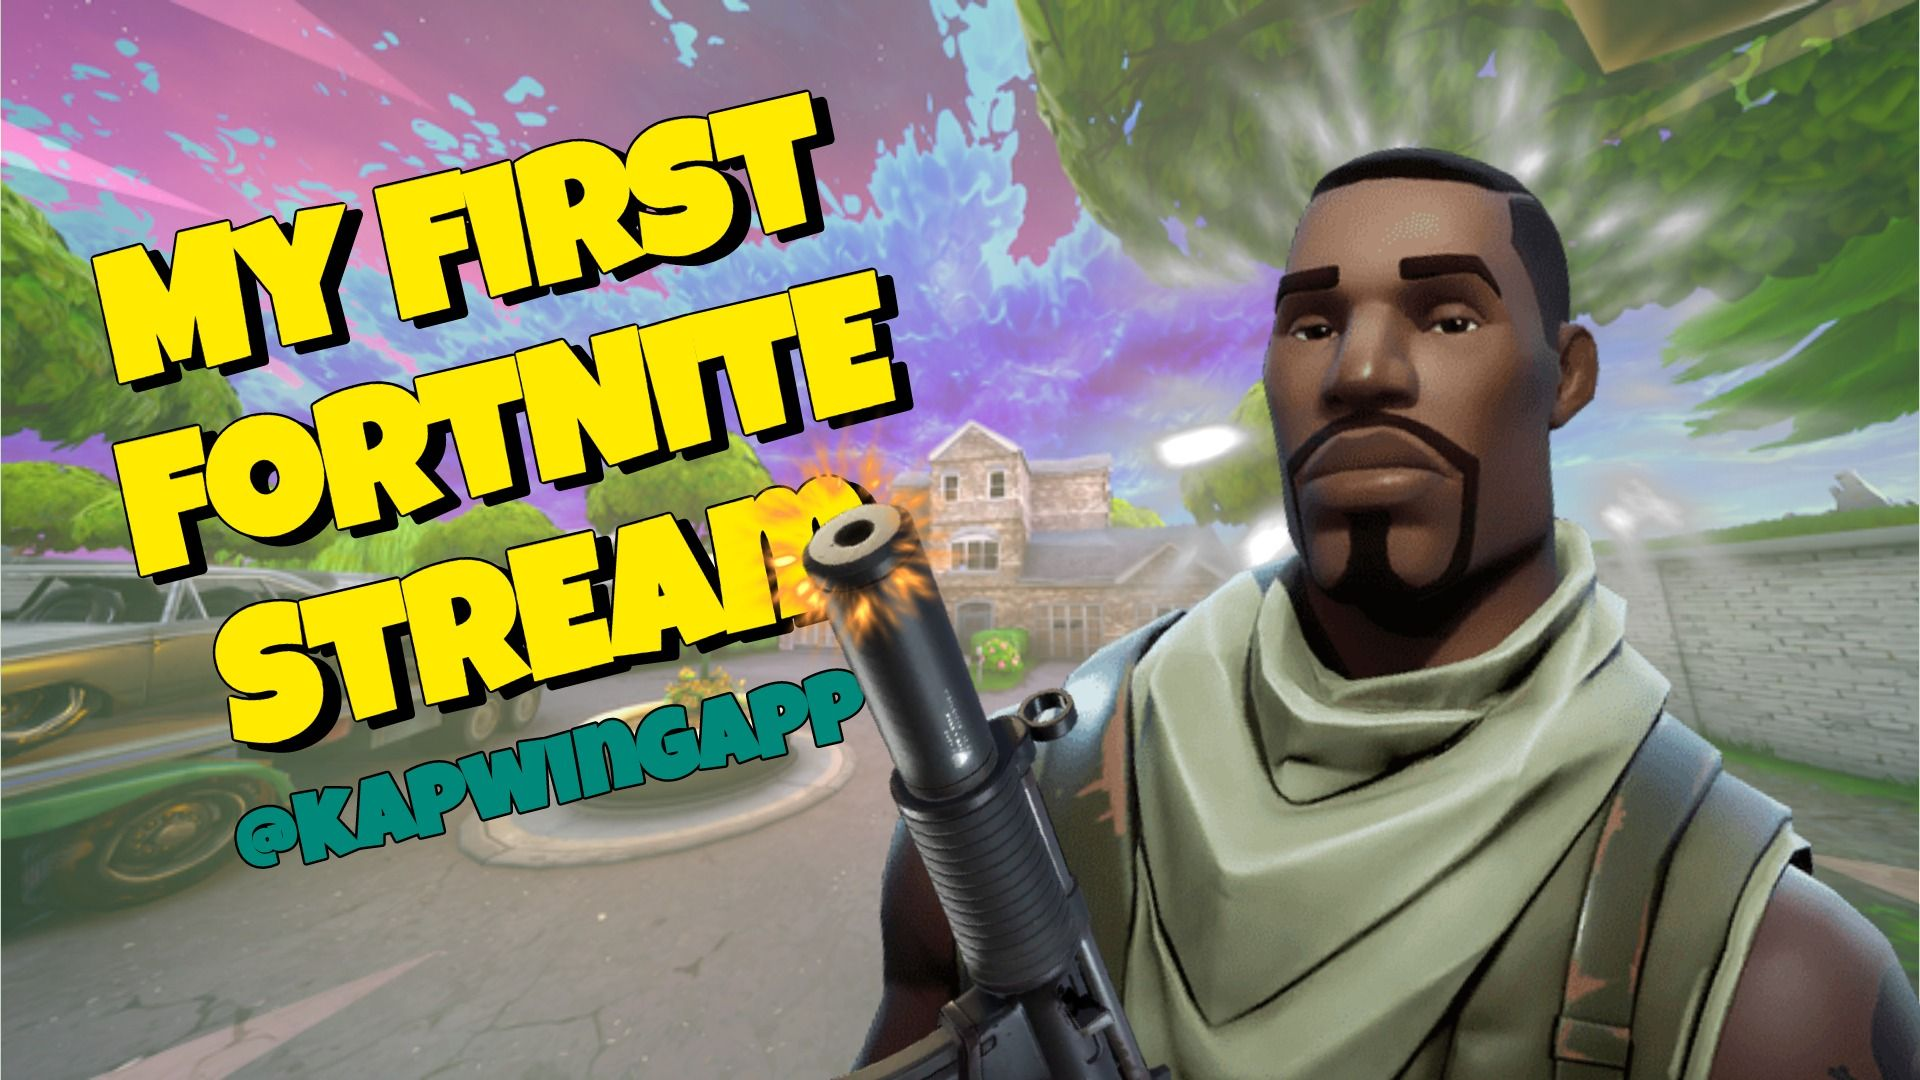 How to Make the Perfect Fortnite Thumbnail for Free (with Templates!)